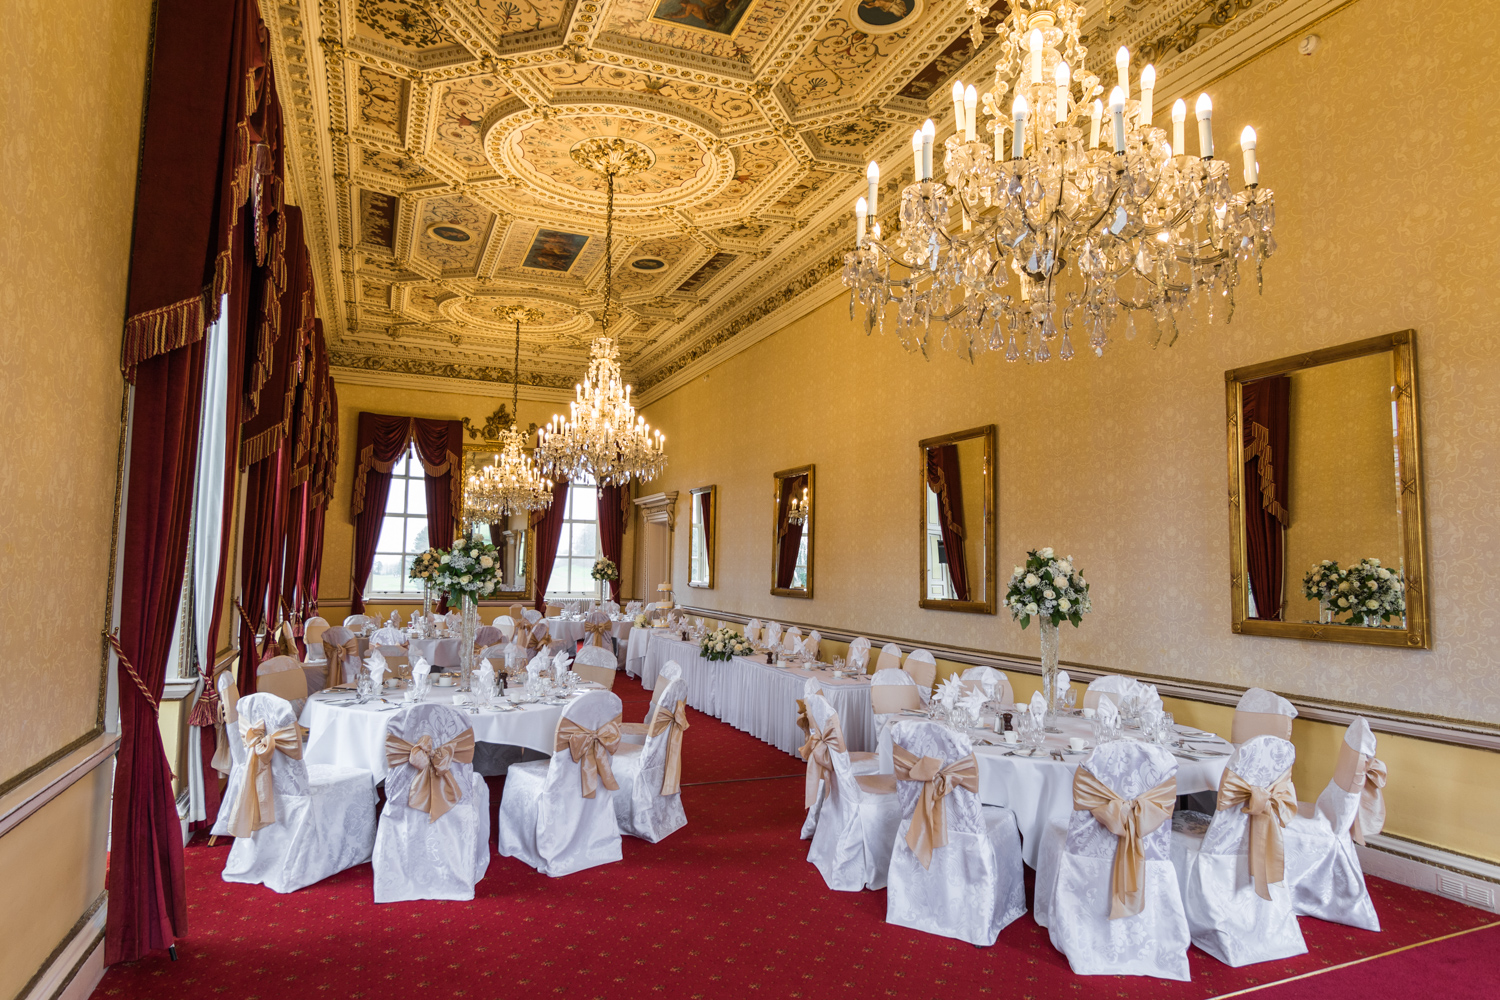 Main Dining hall decorated for Wedding